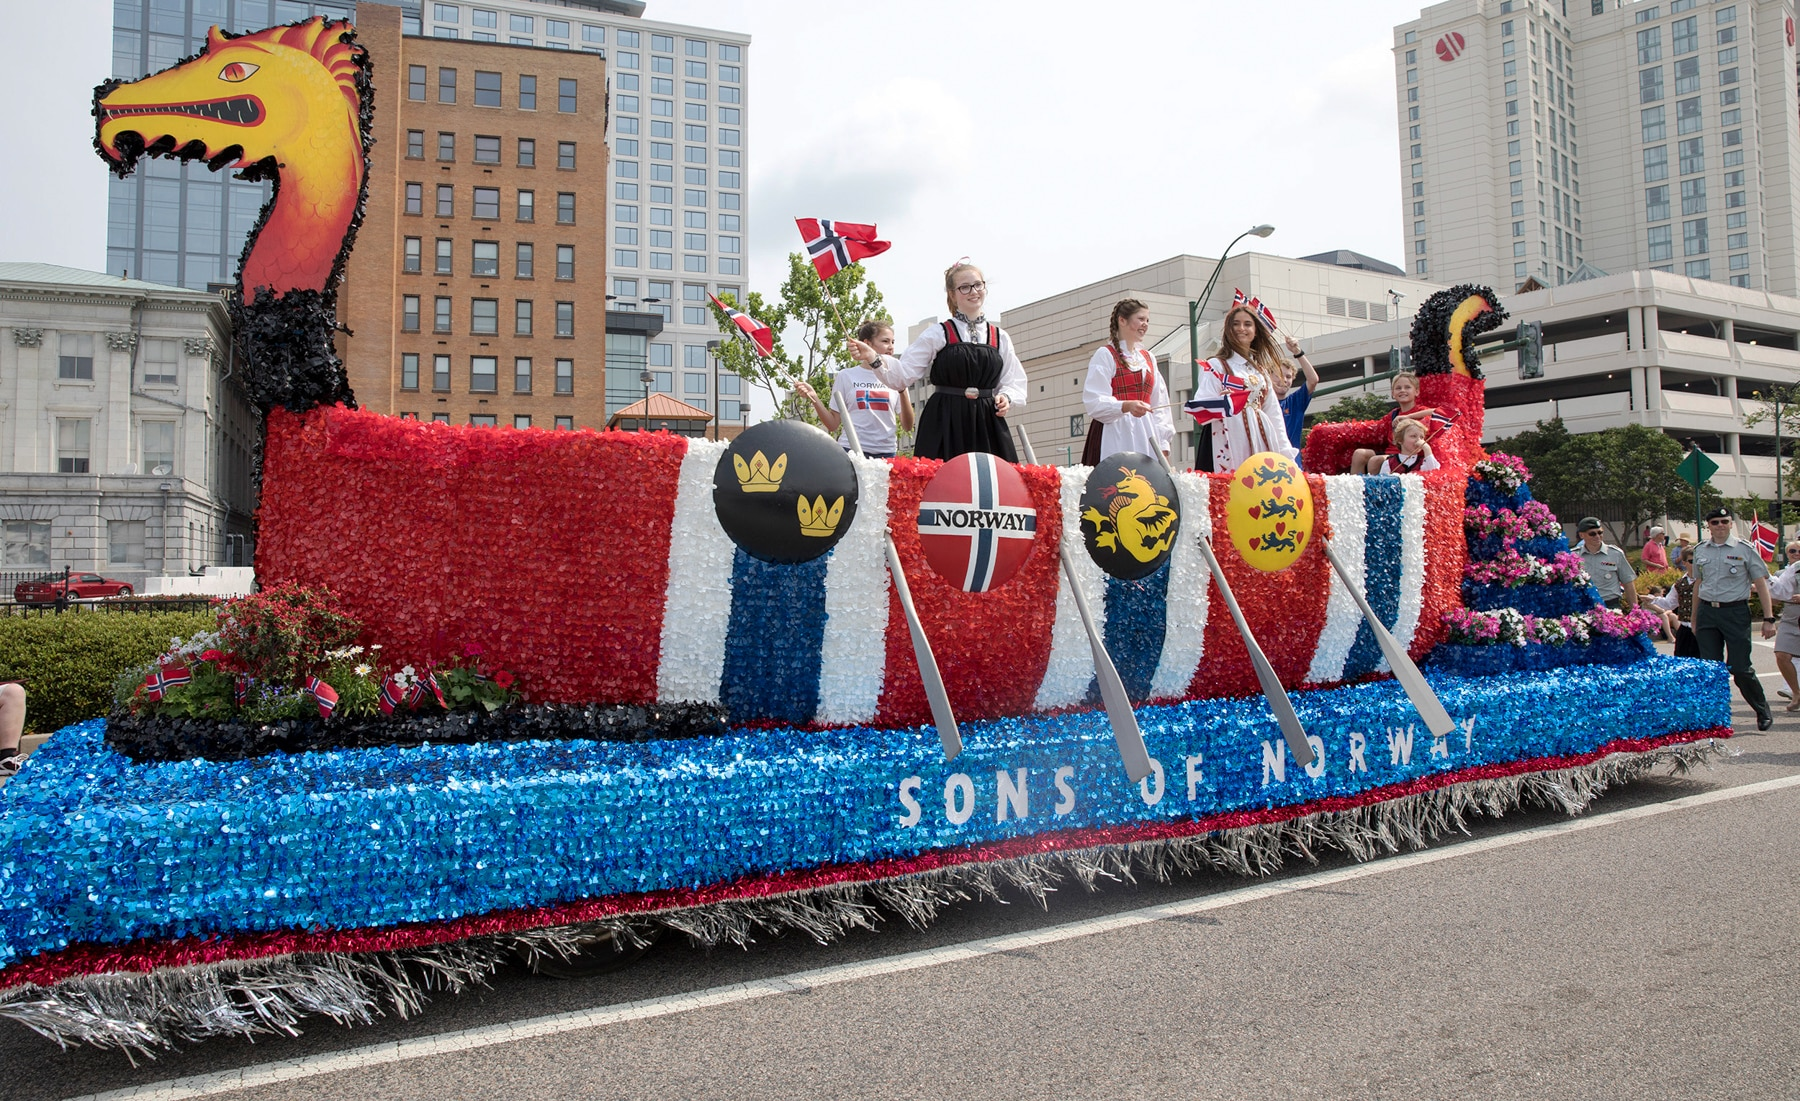 People riding parade float shaped like boat (U.S. Navy/Abraham Essenmacher)